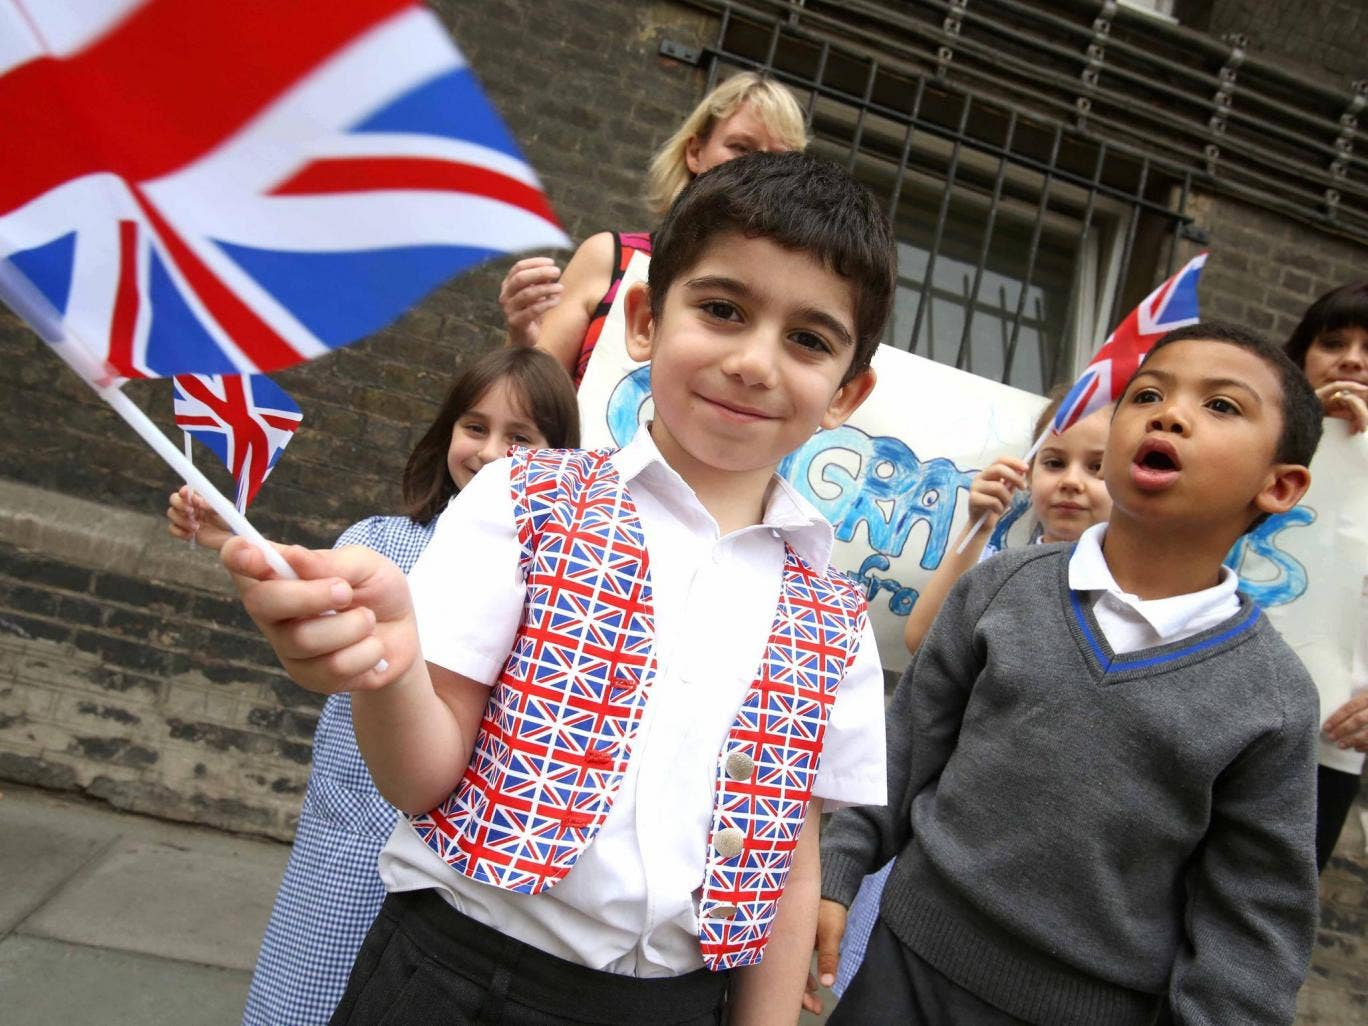 School children wave flags in celebration of the birth of the royal baby outside St. Mary's hospital